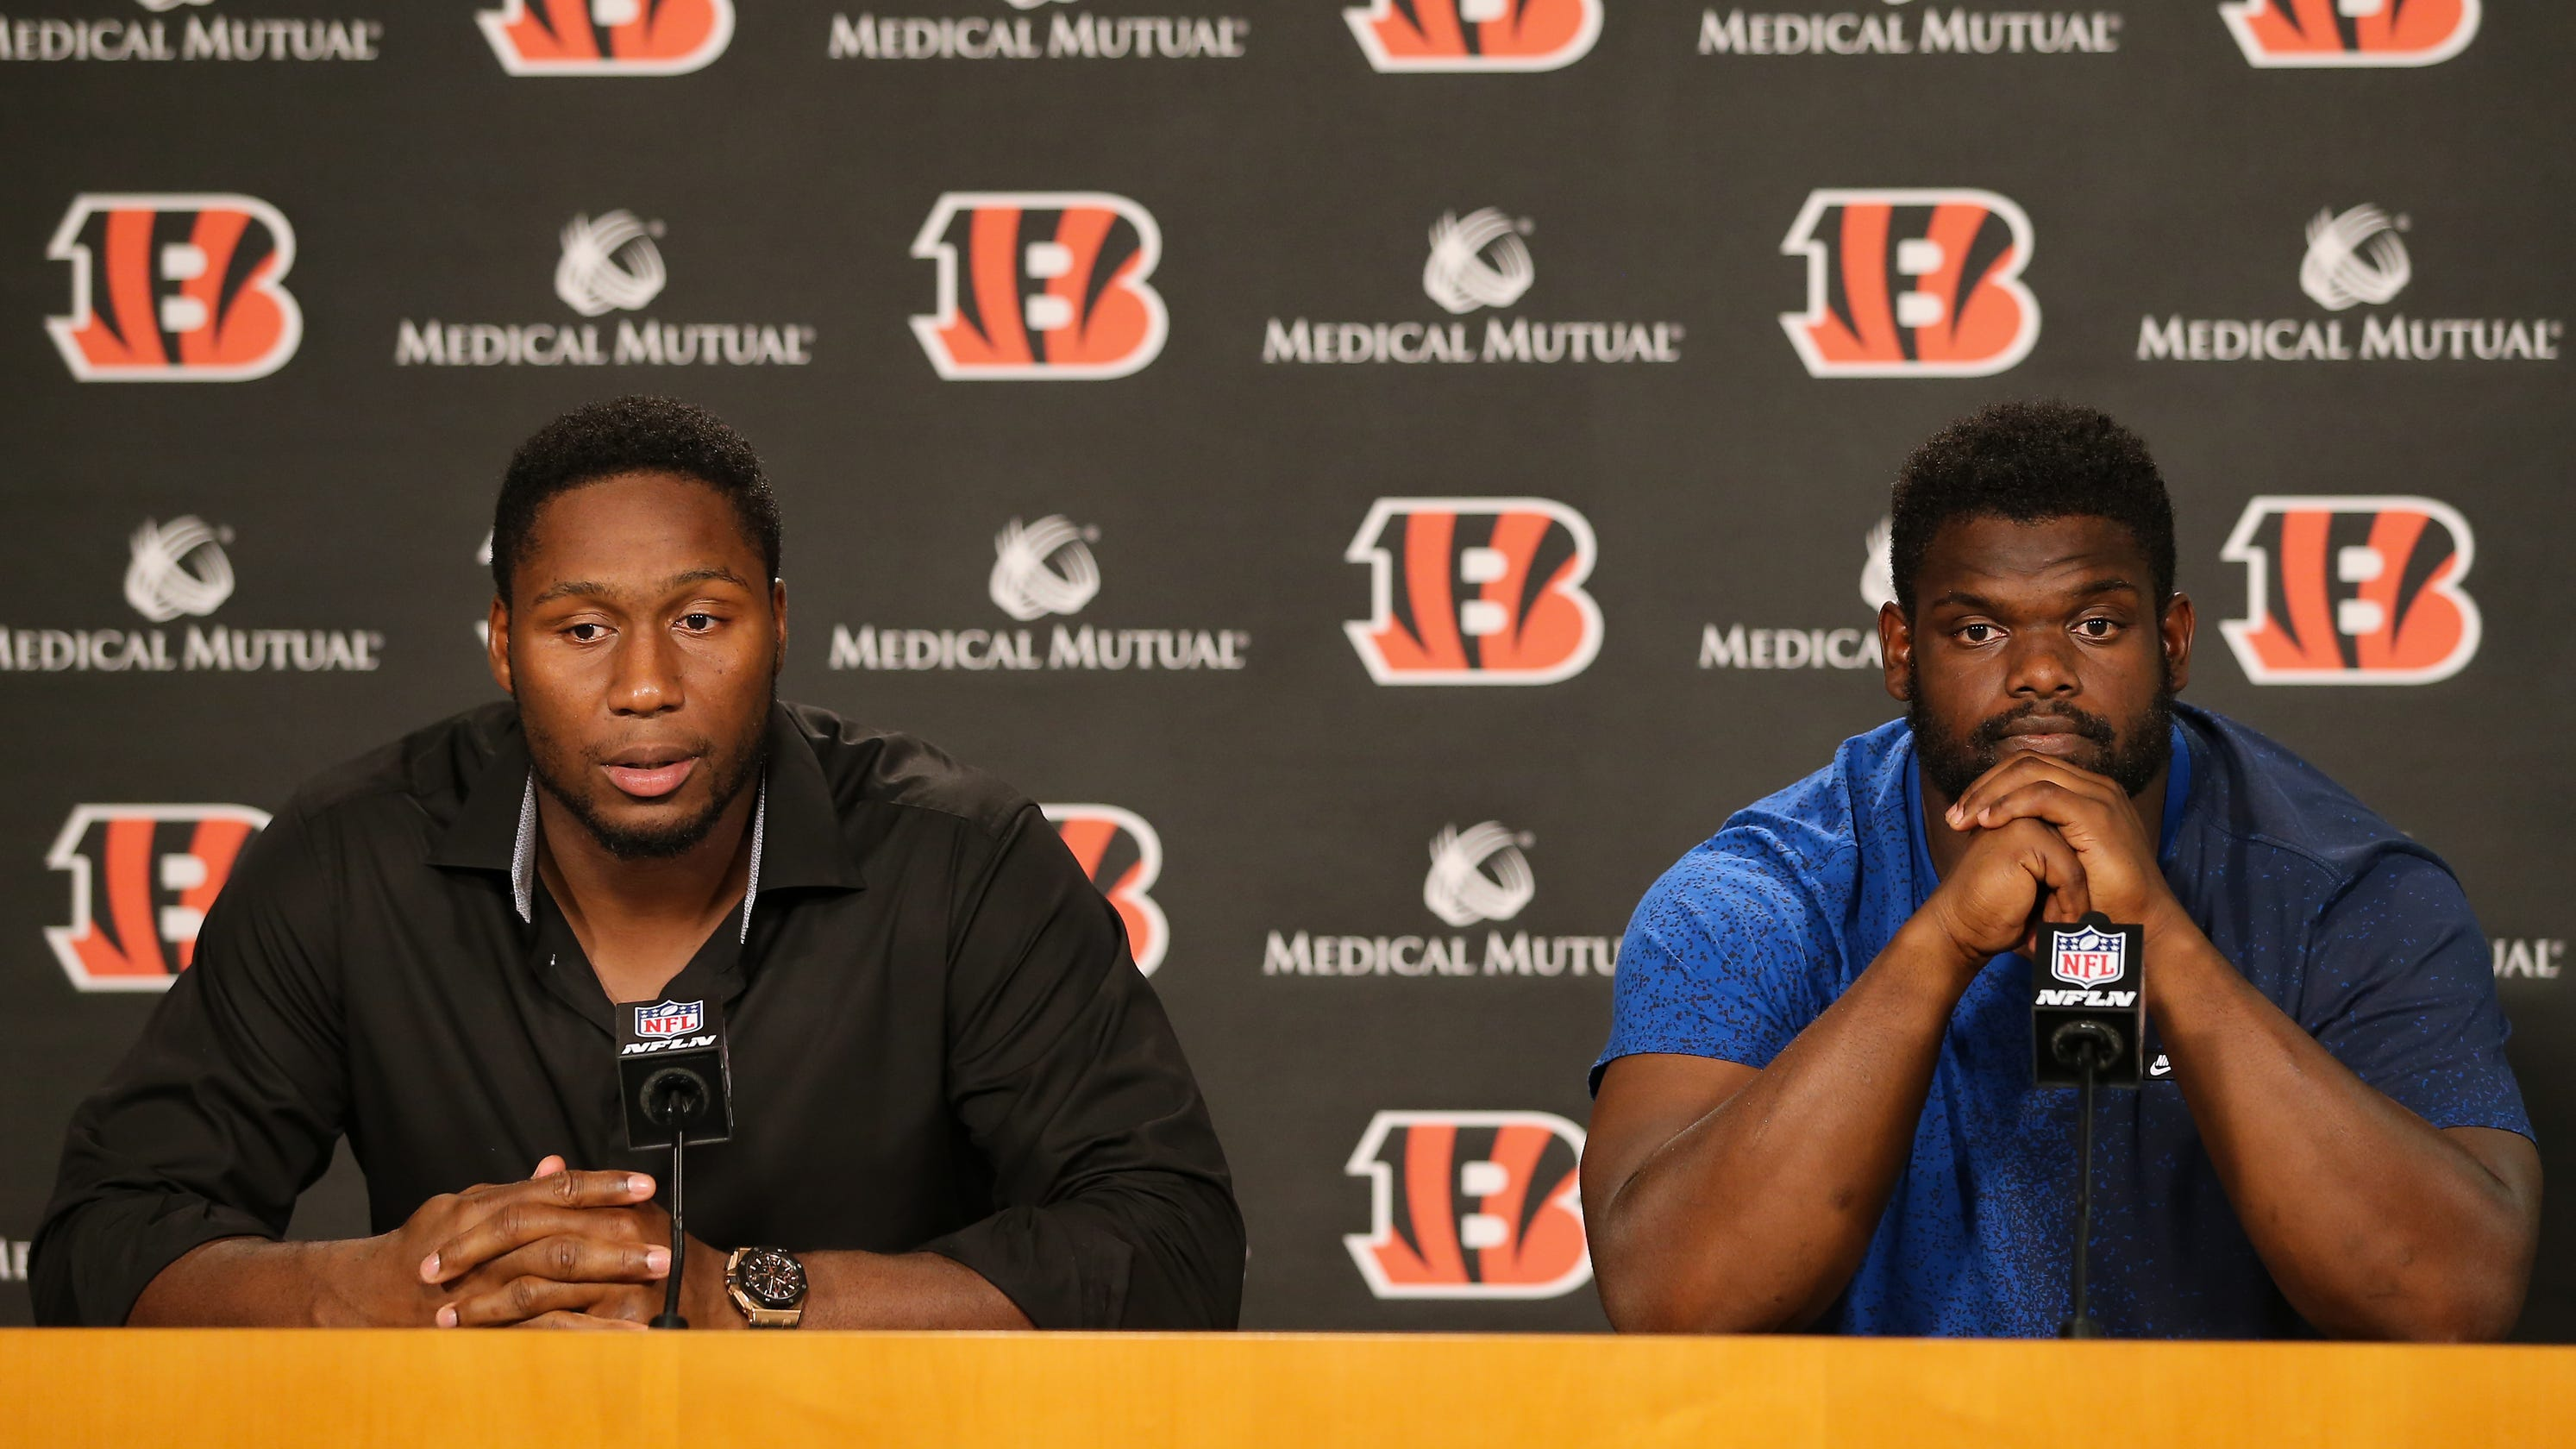 Doc: The significance of Atkins, Dunlap signings for the Bengals